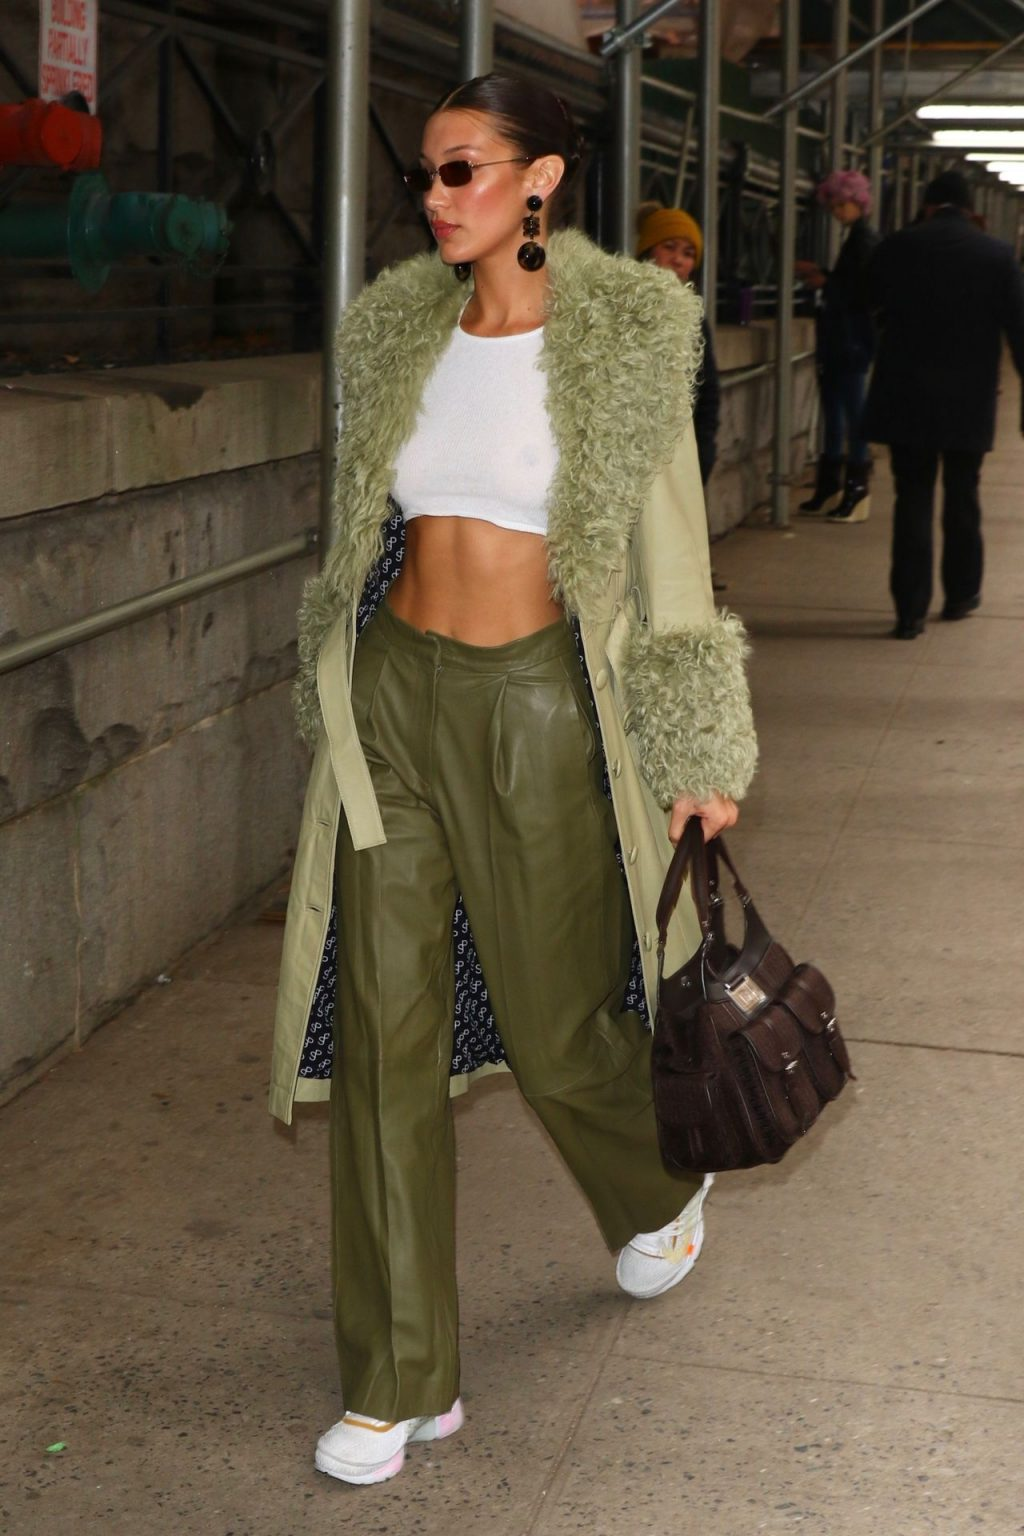 Bella Hadid See through The Fappening Blog 58 1024x1536 - Braless Bella Hadid Arrives at the Park Avenue Armory for the Marc Jacobs Fashion Show (59 Photos)